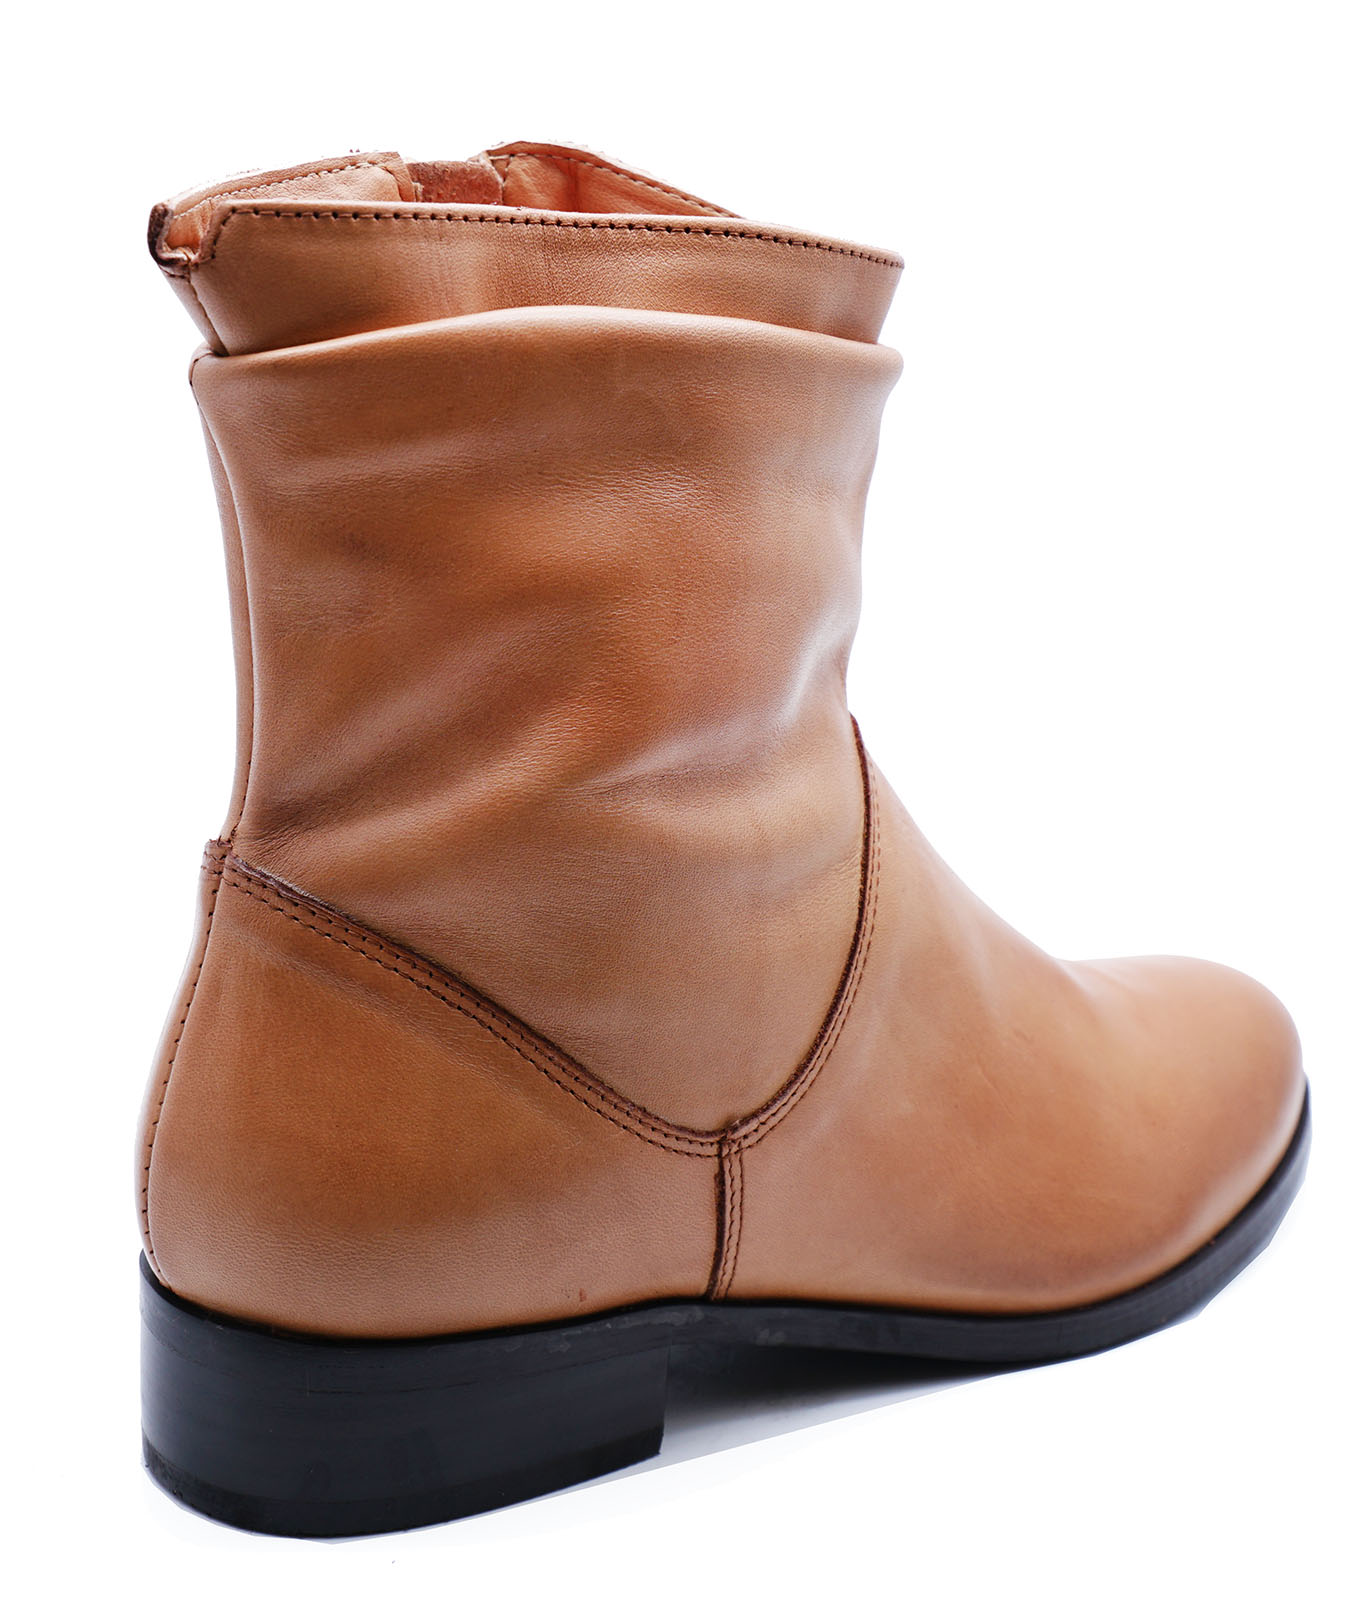 LADIES-FLAT-GENUINE-LEATHER-TAN-ZIP-UP-ANKLE-CALF-BOOTS-COMFY-SHOES-SIZES-2-9 thumbnail 24